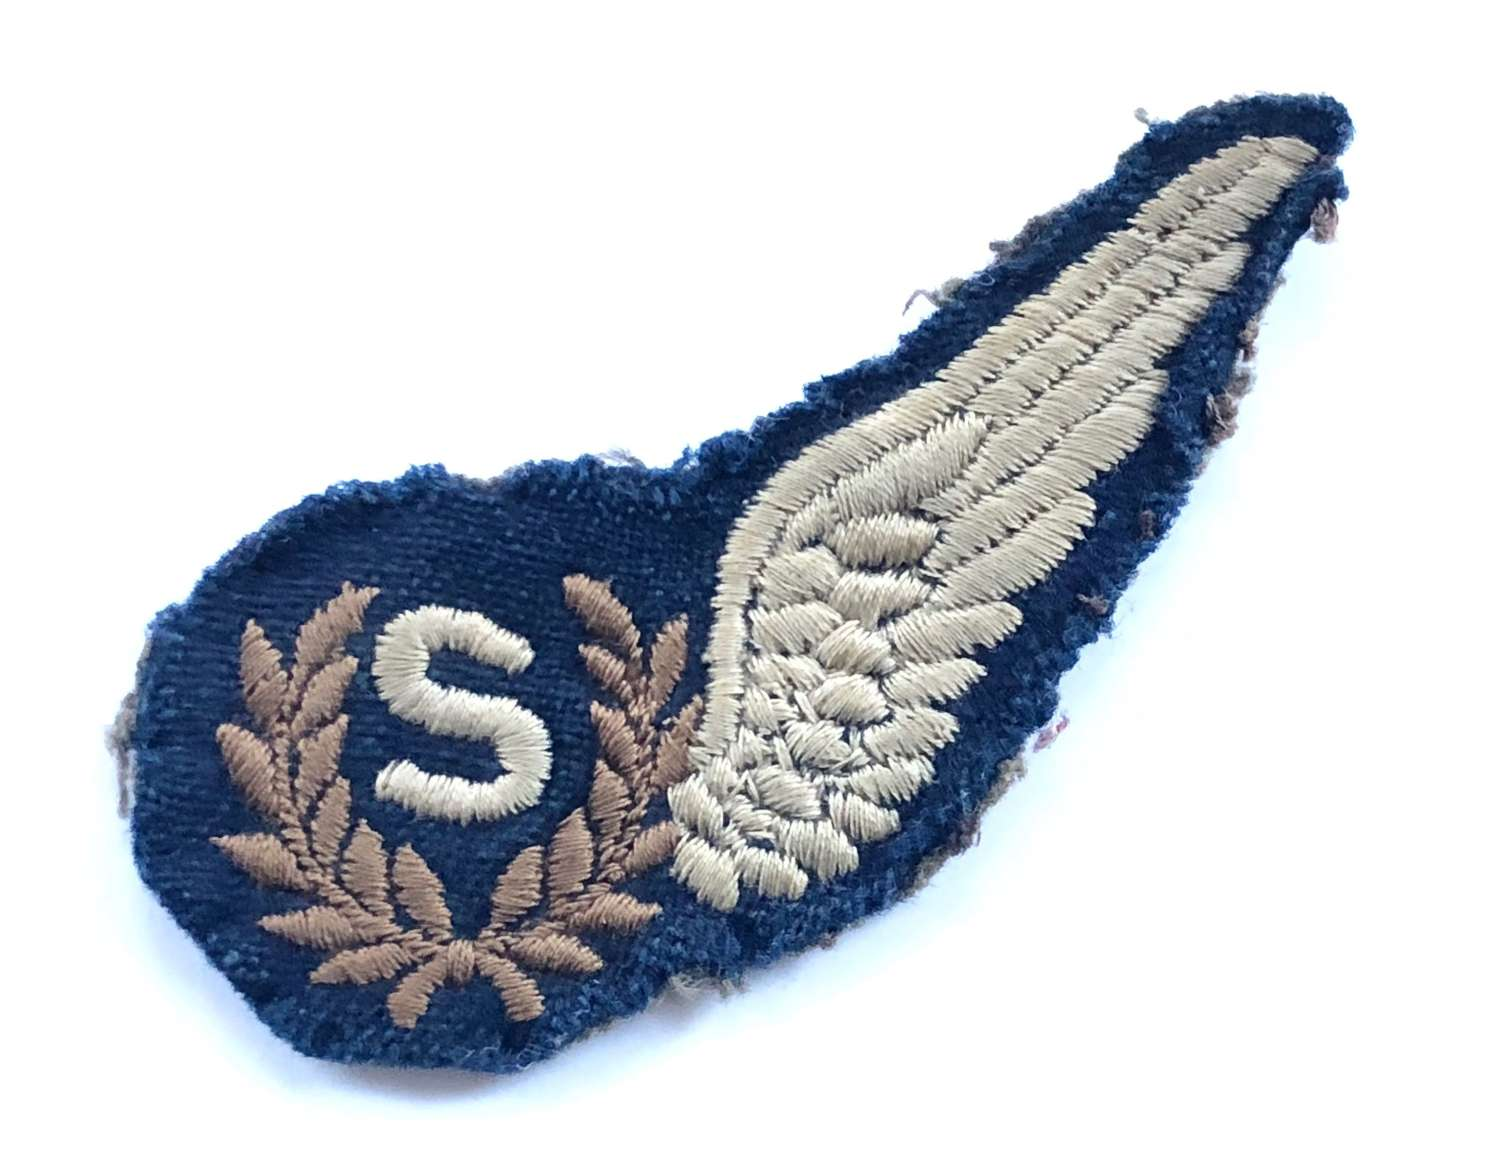 WW2 RAF Signaler Brevet Badge.